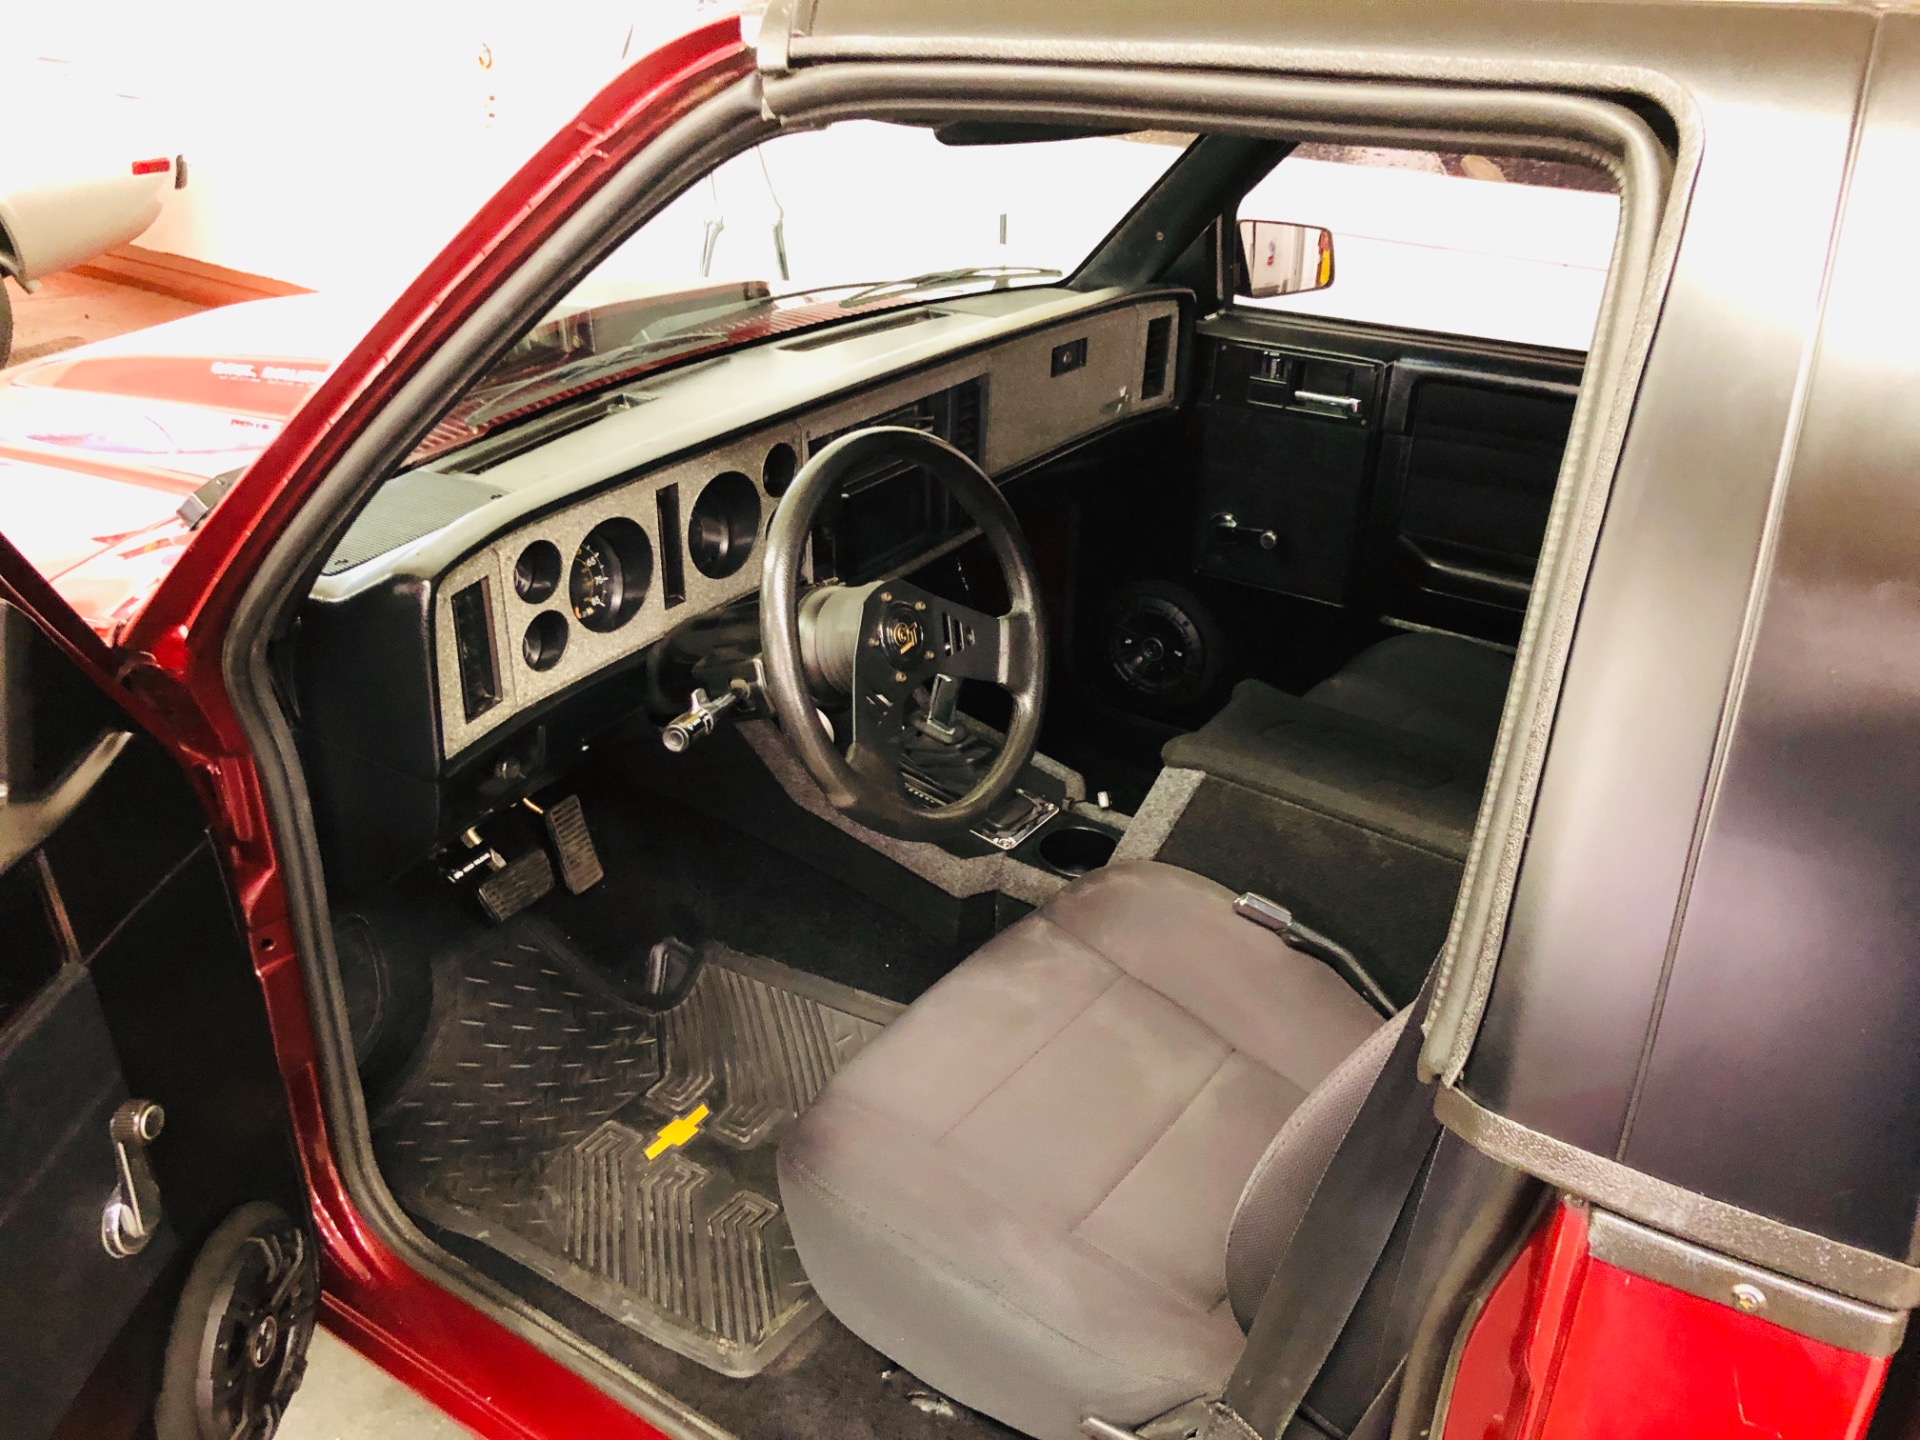 Used 1983 Chevrolet S-10 -CUSTOM SHOW TRUCK - REMOVABLE TOP - 383 STROKER - SEE VIDEO | Mundelein, IL